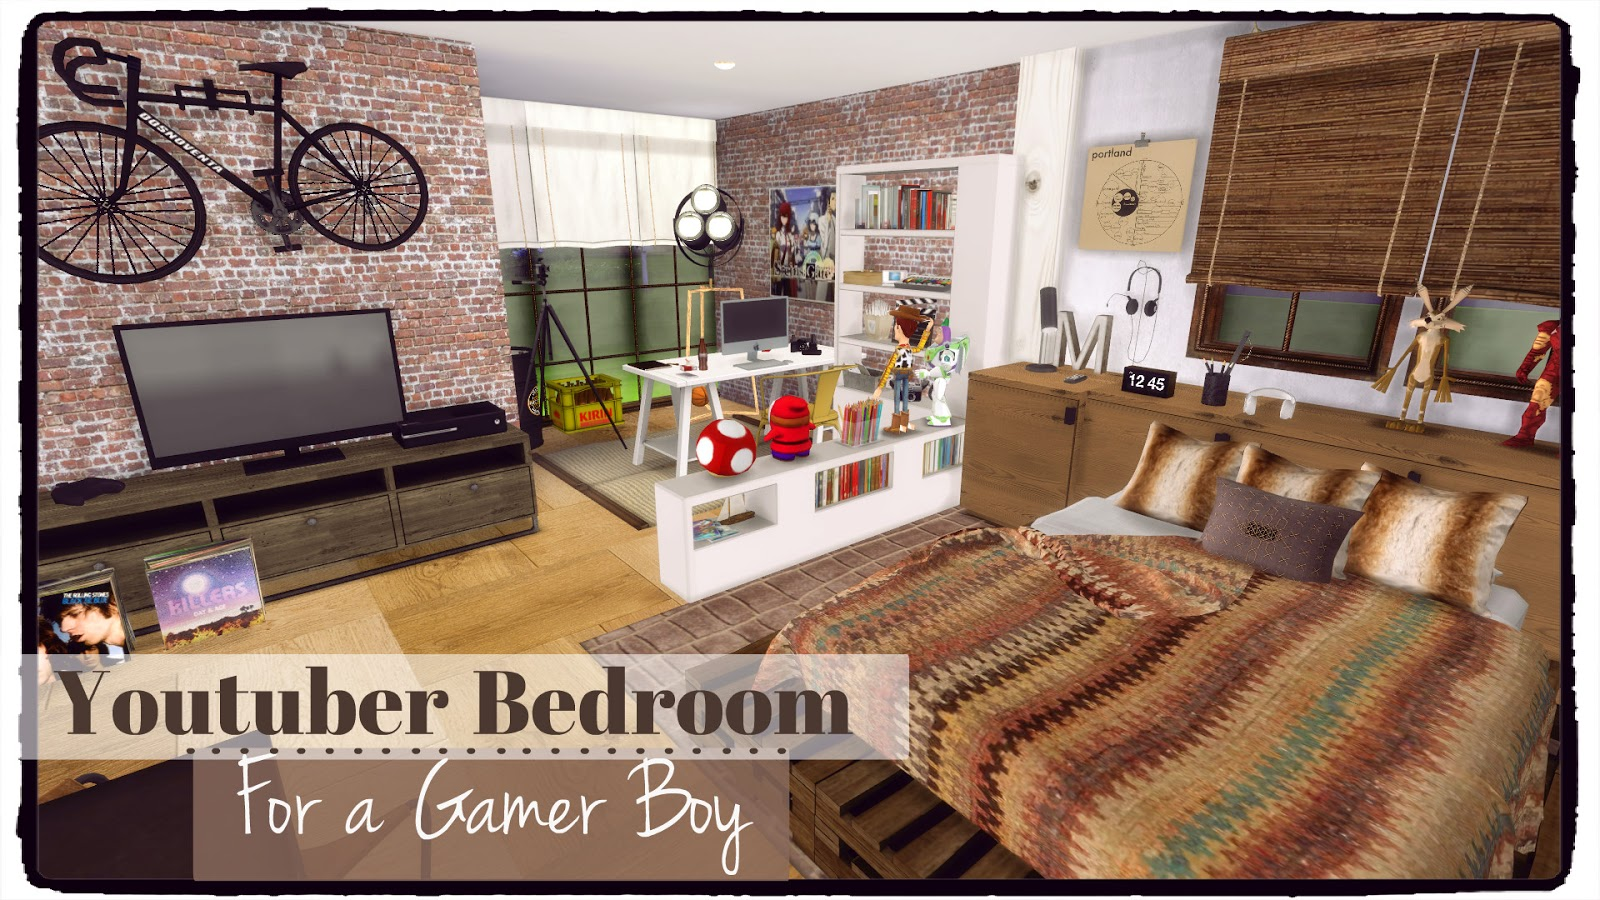 Sims 4 youtuber bedroom for a gamer boy dinha for Bedroom designs sims 4